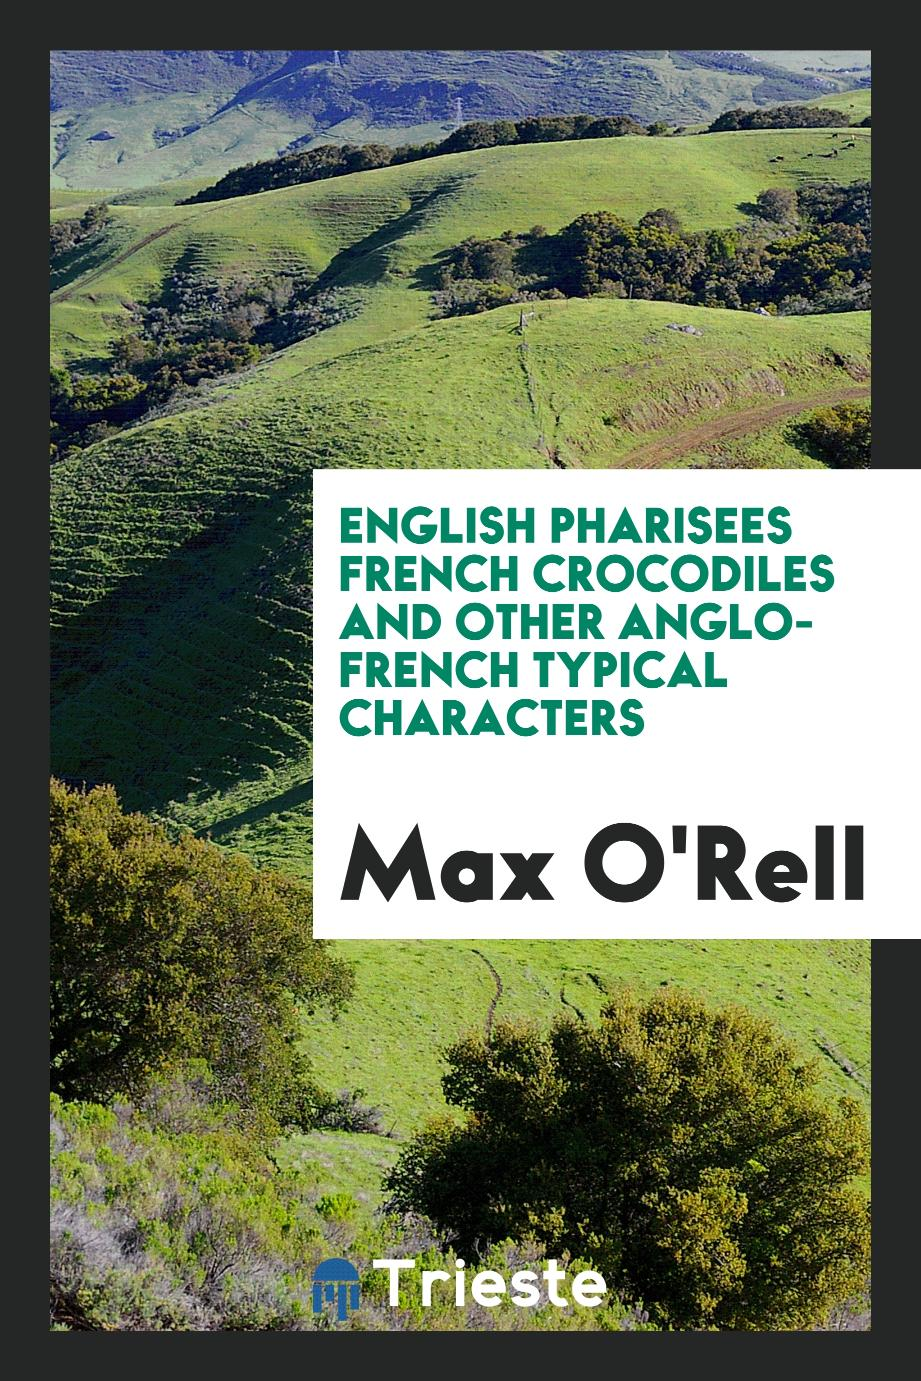 English Pharisees French Crocodiles and Other Anglo-French Typical Characters